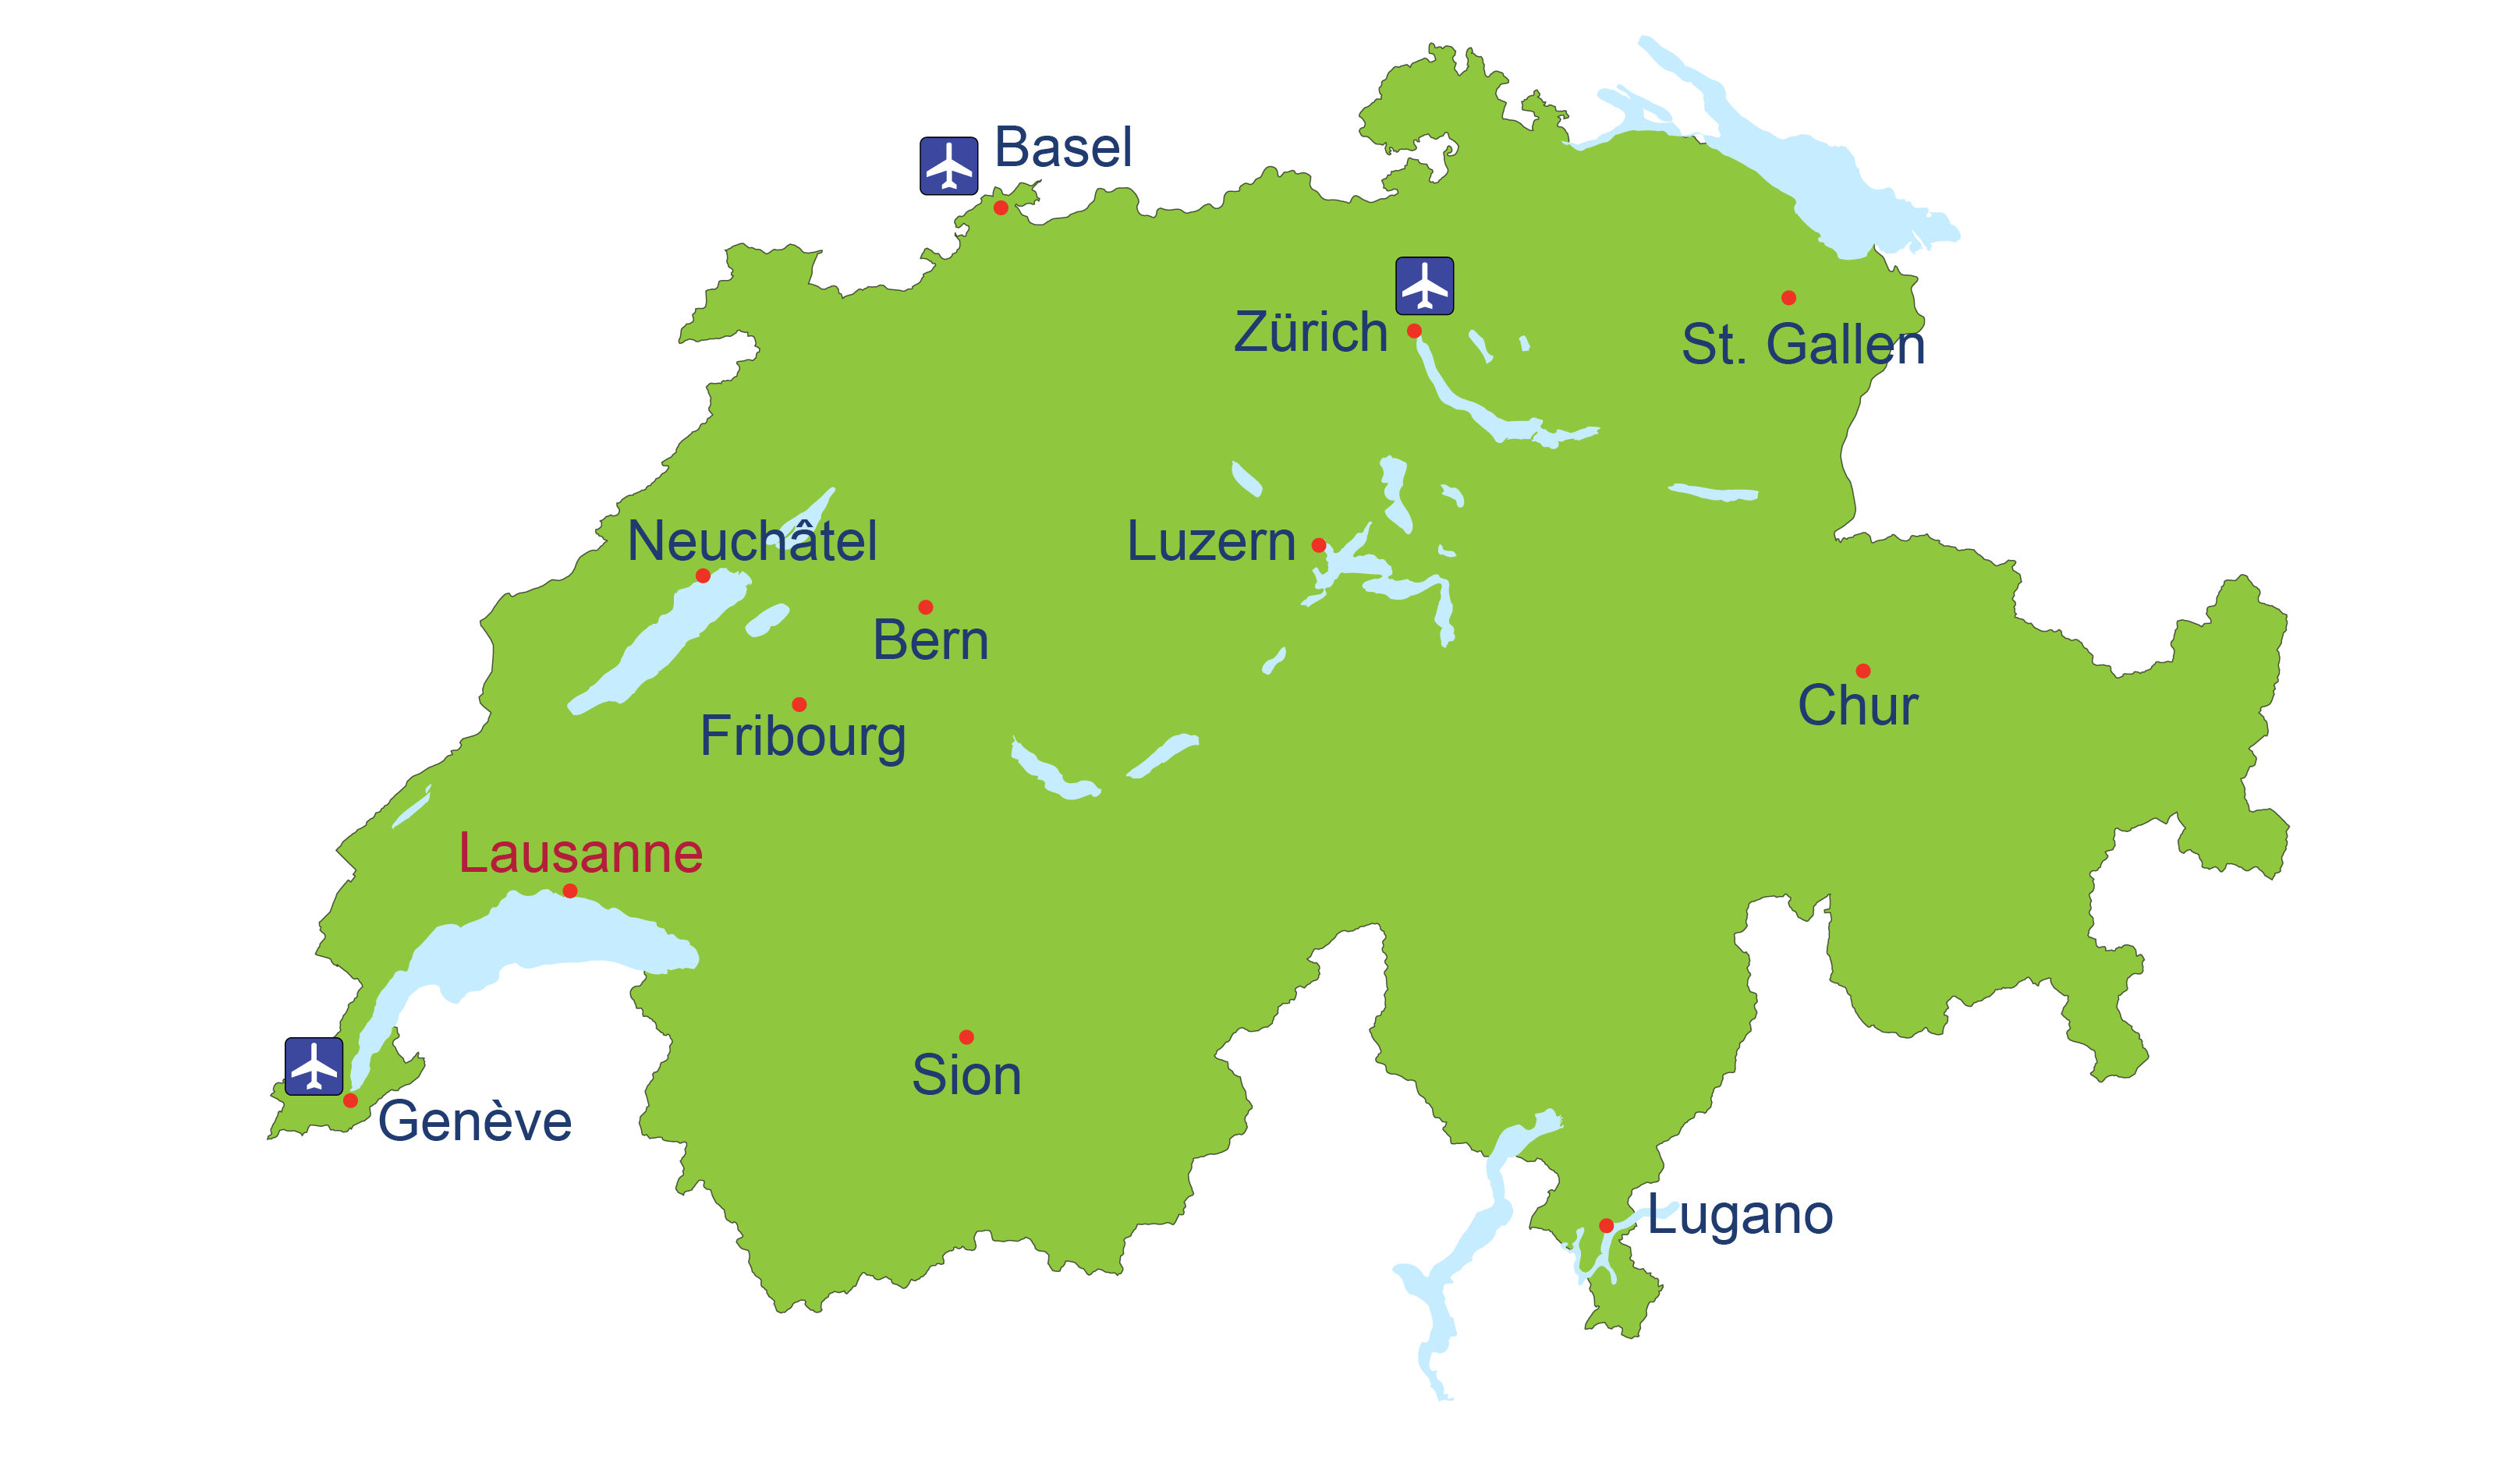 Map of Switzerland with main cities